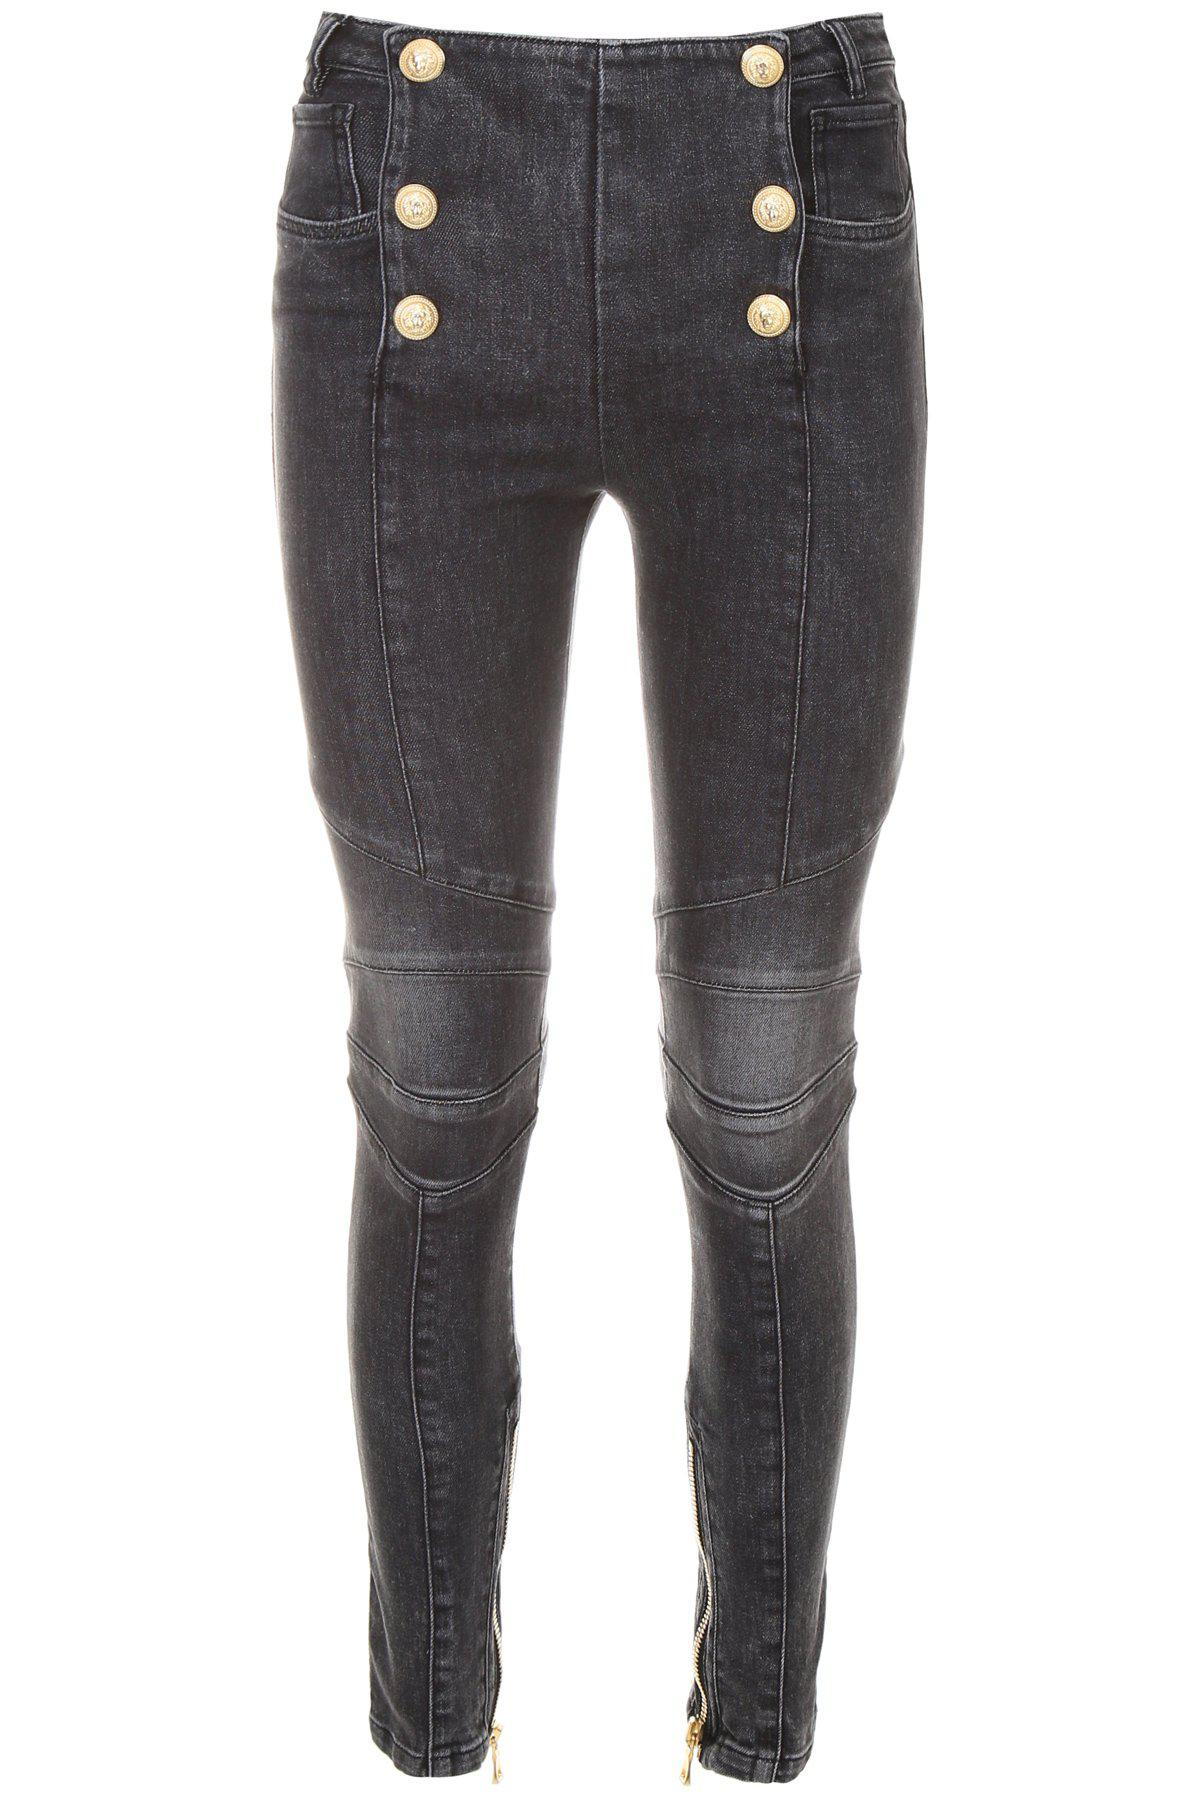 b509188b Balmain Double Breasted Skinny Jeans in Gray - Lyst